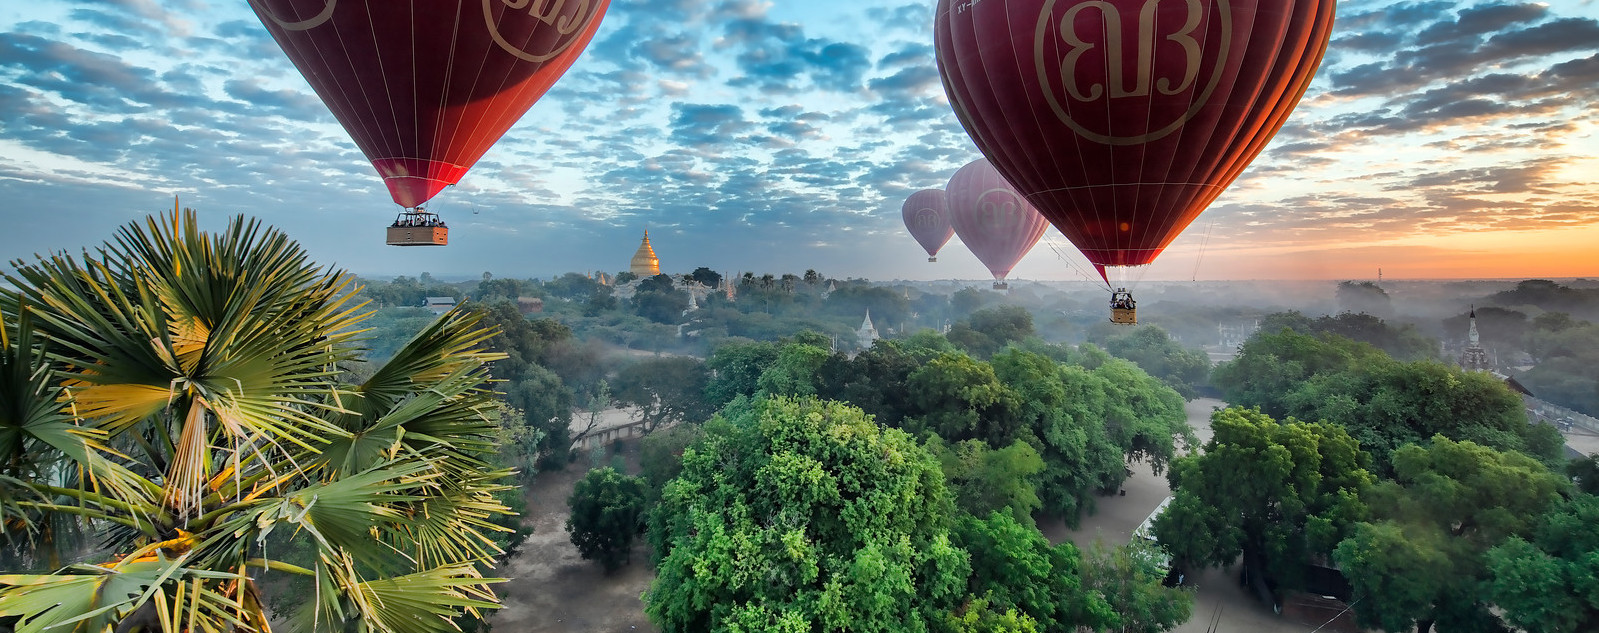 Balloons over Bagan by photographer @ChrisMichel, 7 December 2012, 16:16 (Wikimedia Commons (cropped by RYC)